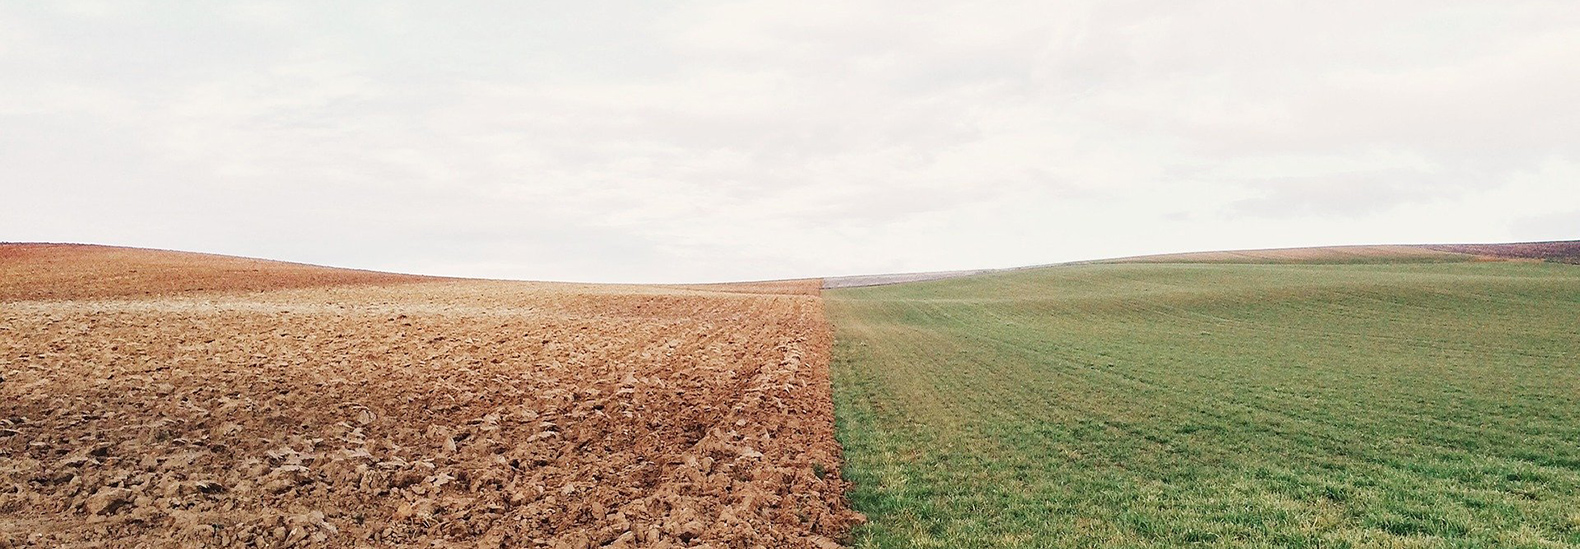 Topsoil is disappearing from Midwest farms | Tech News